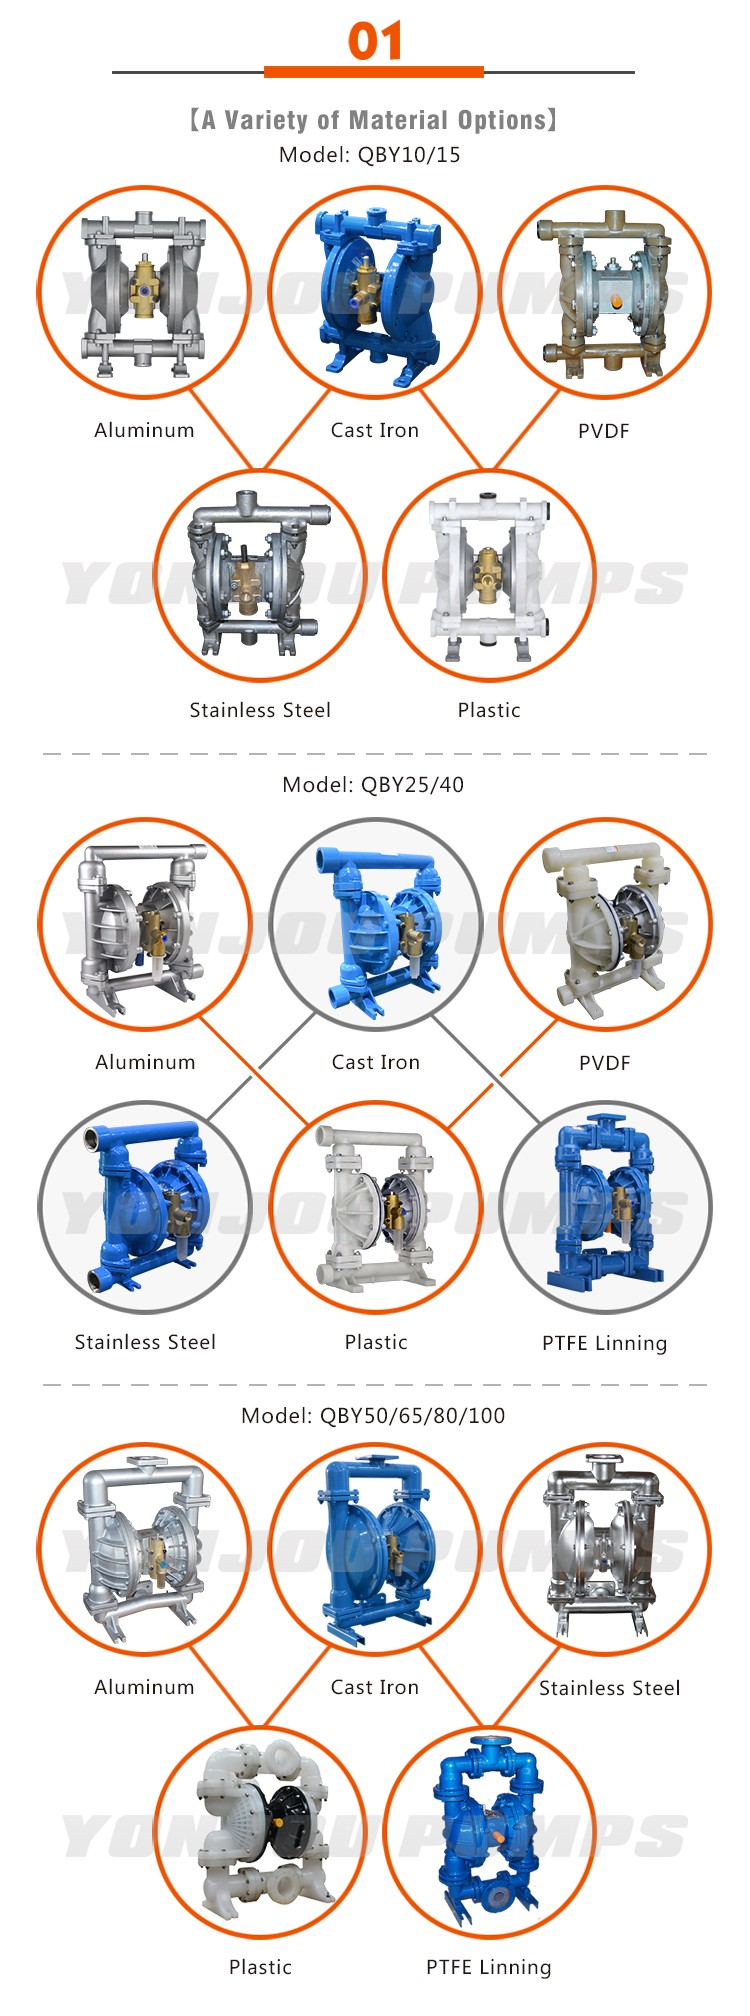 AODDP stainless steel cast iron PVDF PTFE Telfon acid pump, Aluminum air diaphragm pump cast iron pneumatic water pump